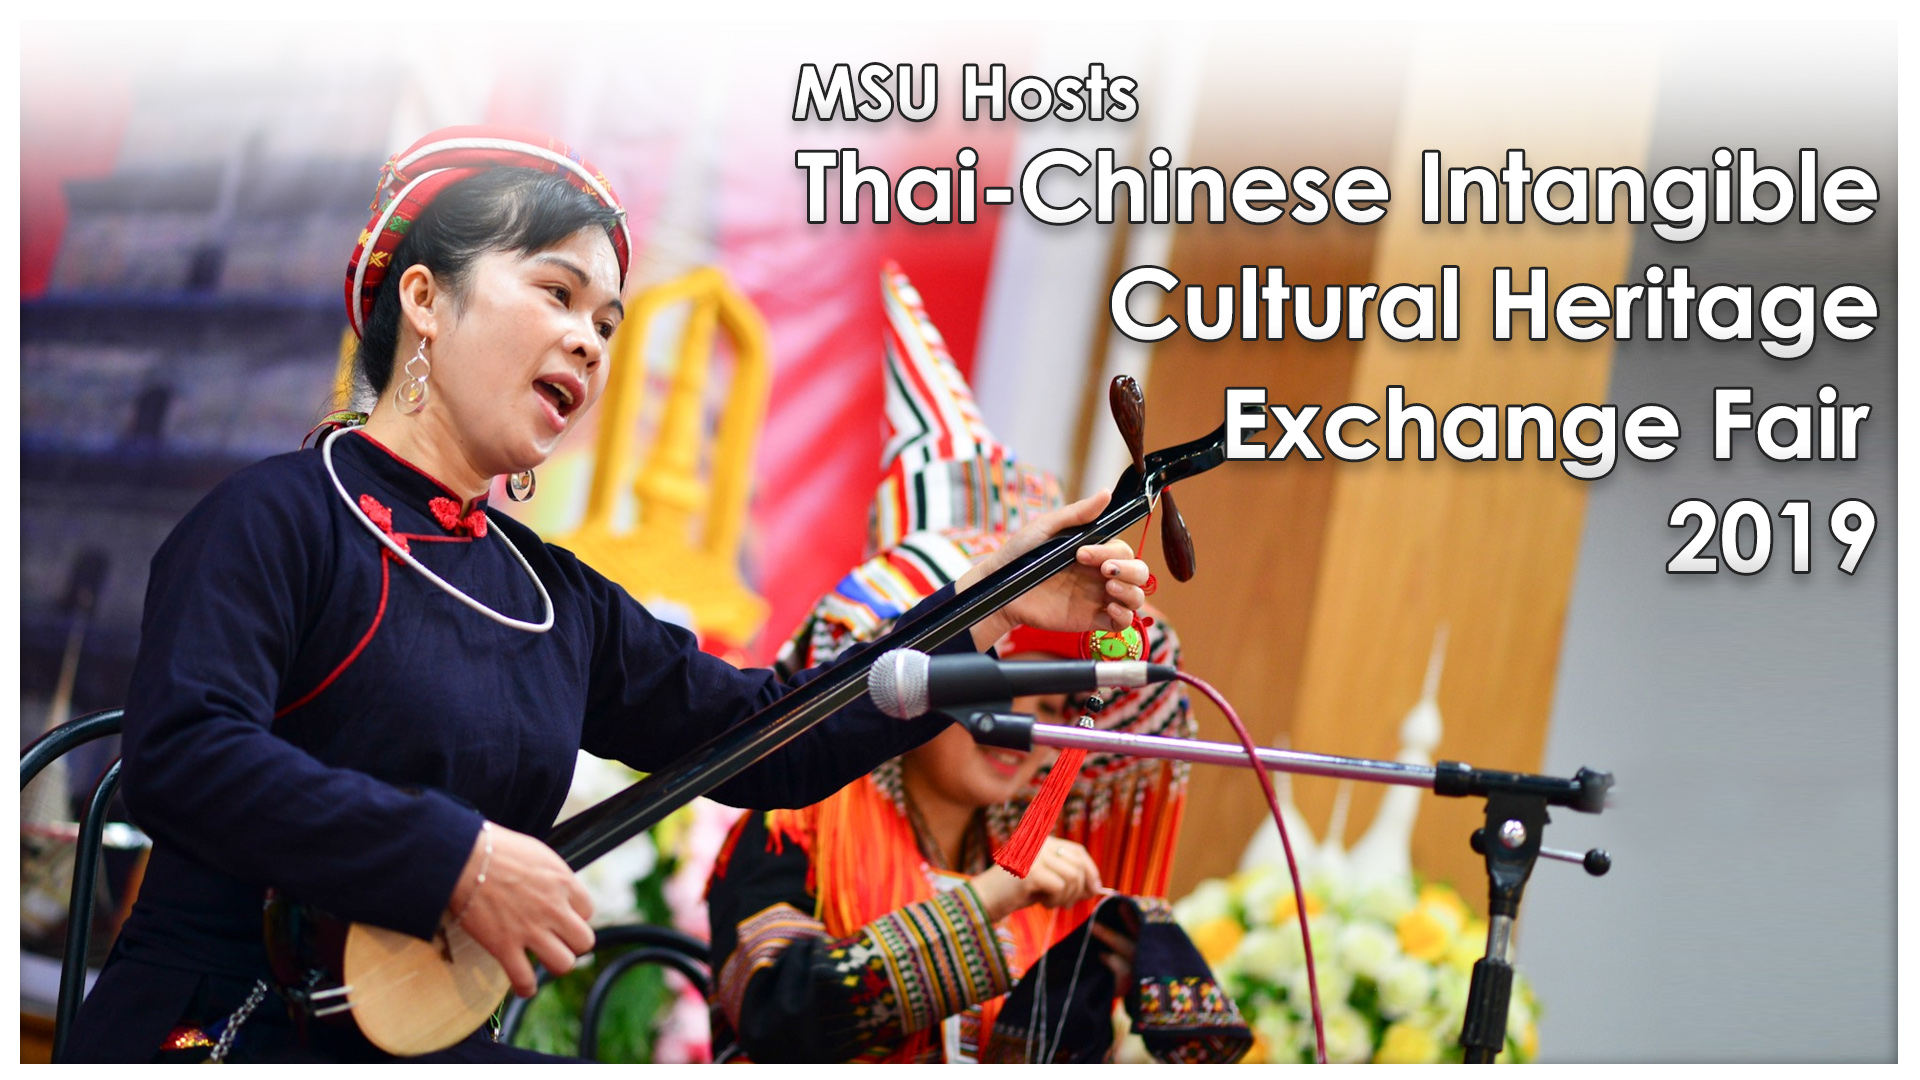 MSU Hosts Thai-Chinese Intangible Cultural Heritage Exchange Fair 2019